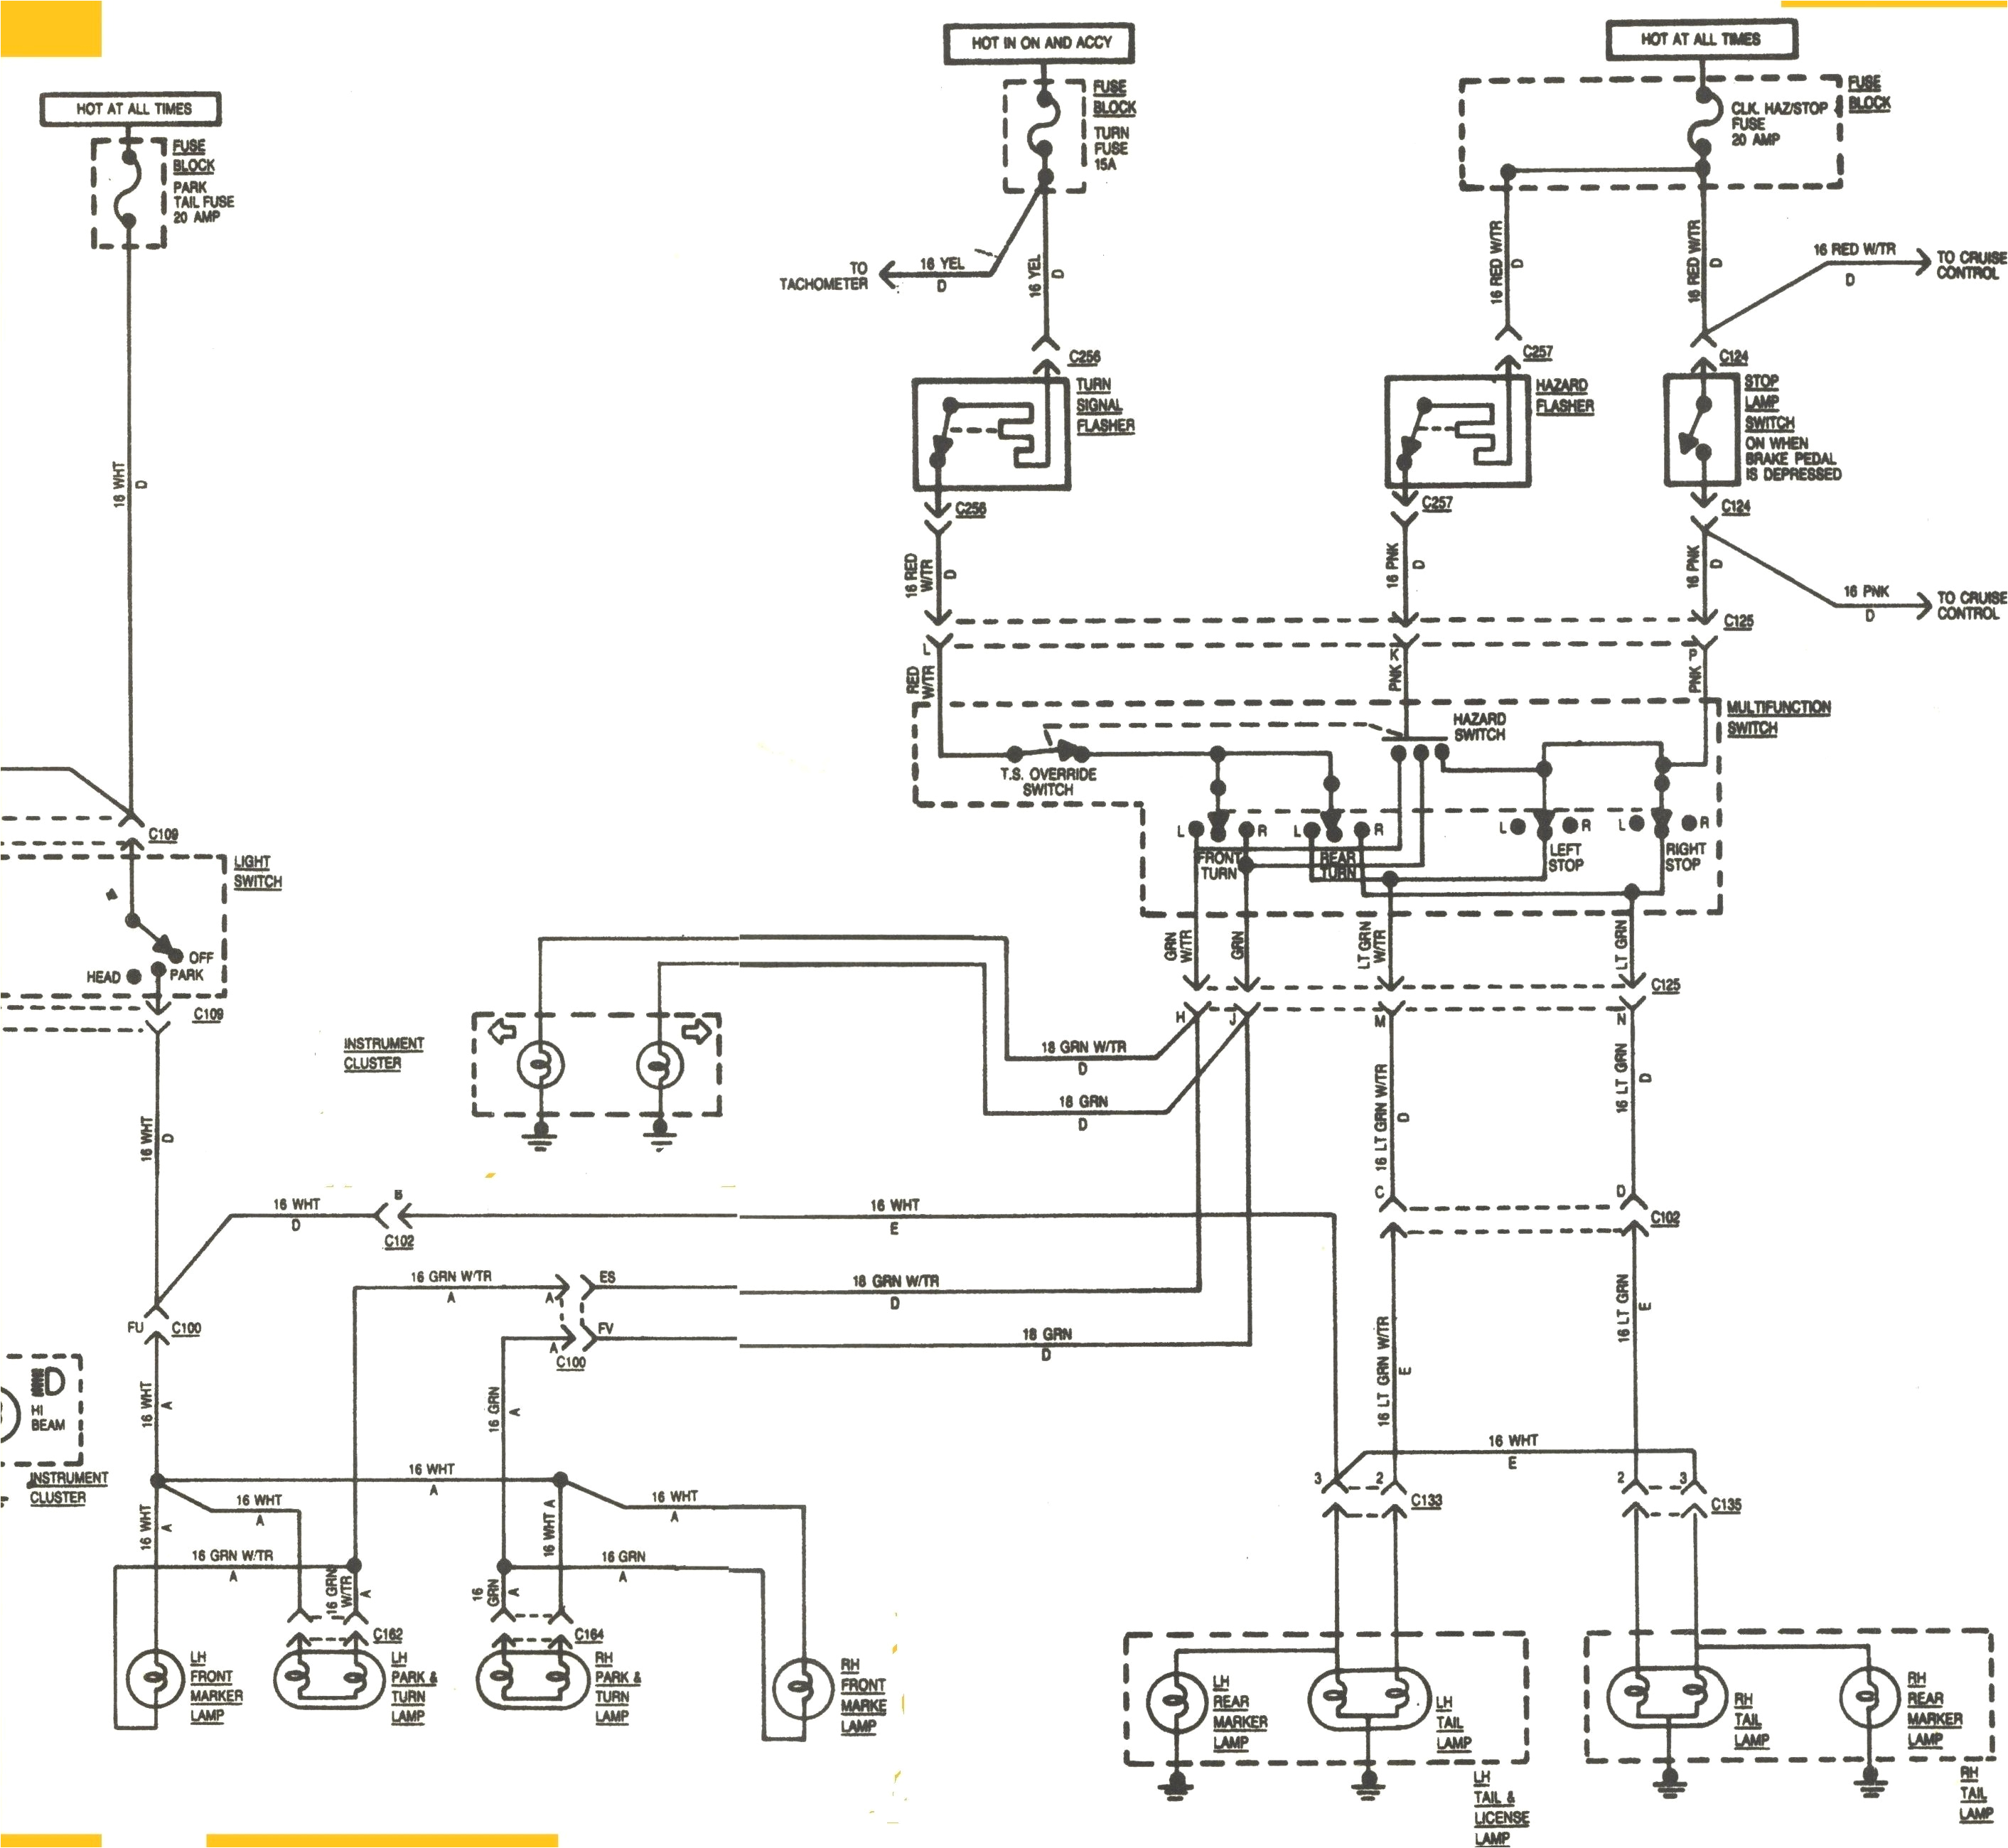 grote turn signal switch wiring diagram wiring diagram turn signal switch wiring diagram universal